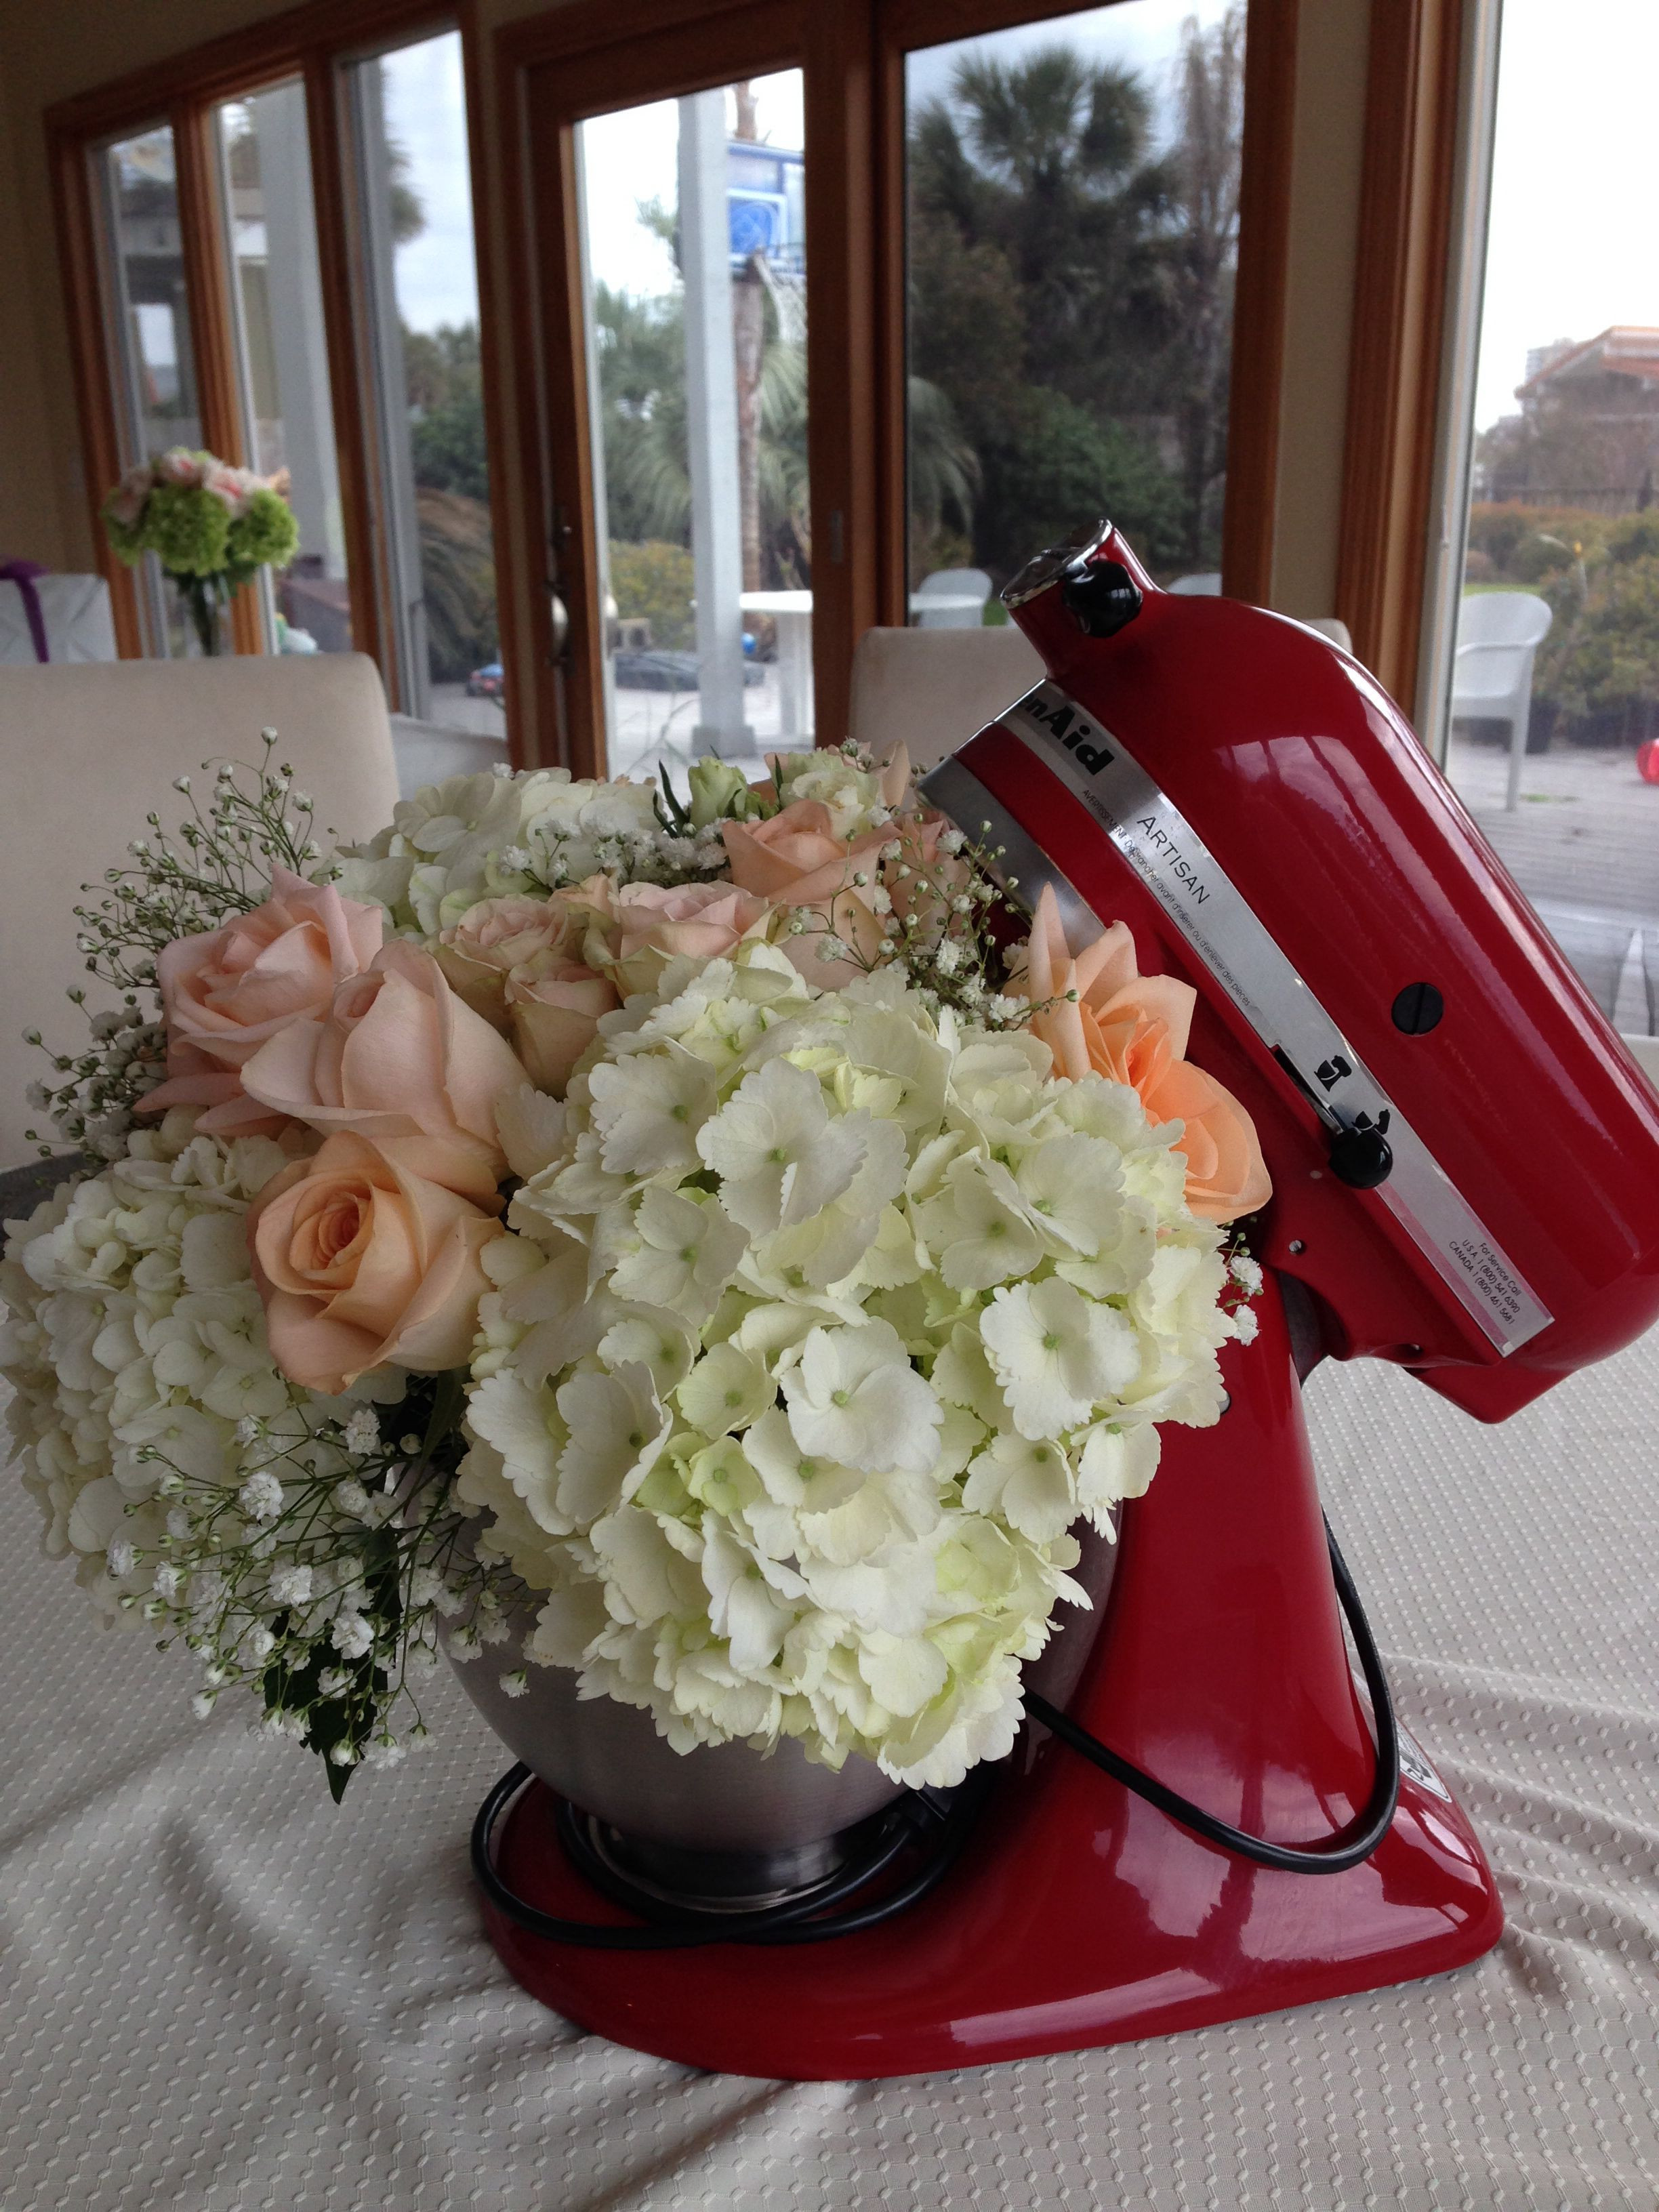 Kitchen themed wedding shower flower arrangement inside of a kitchen aid